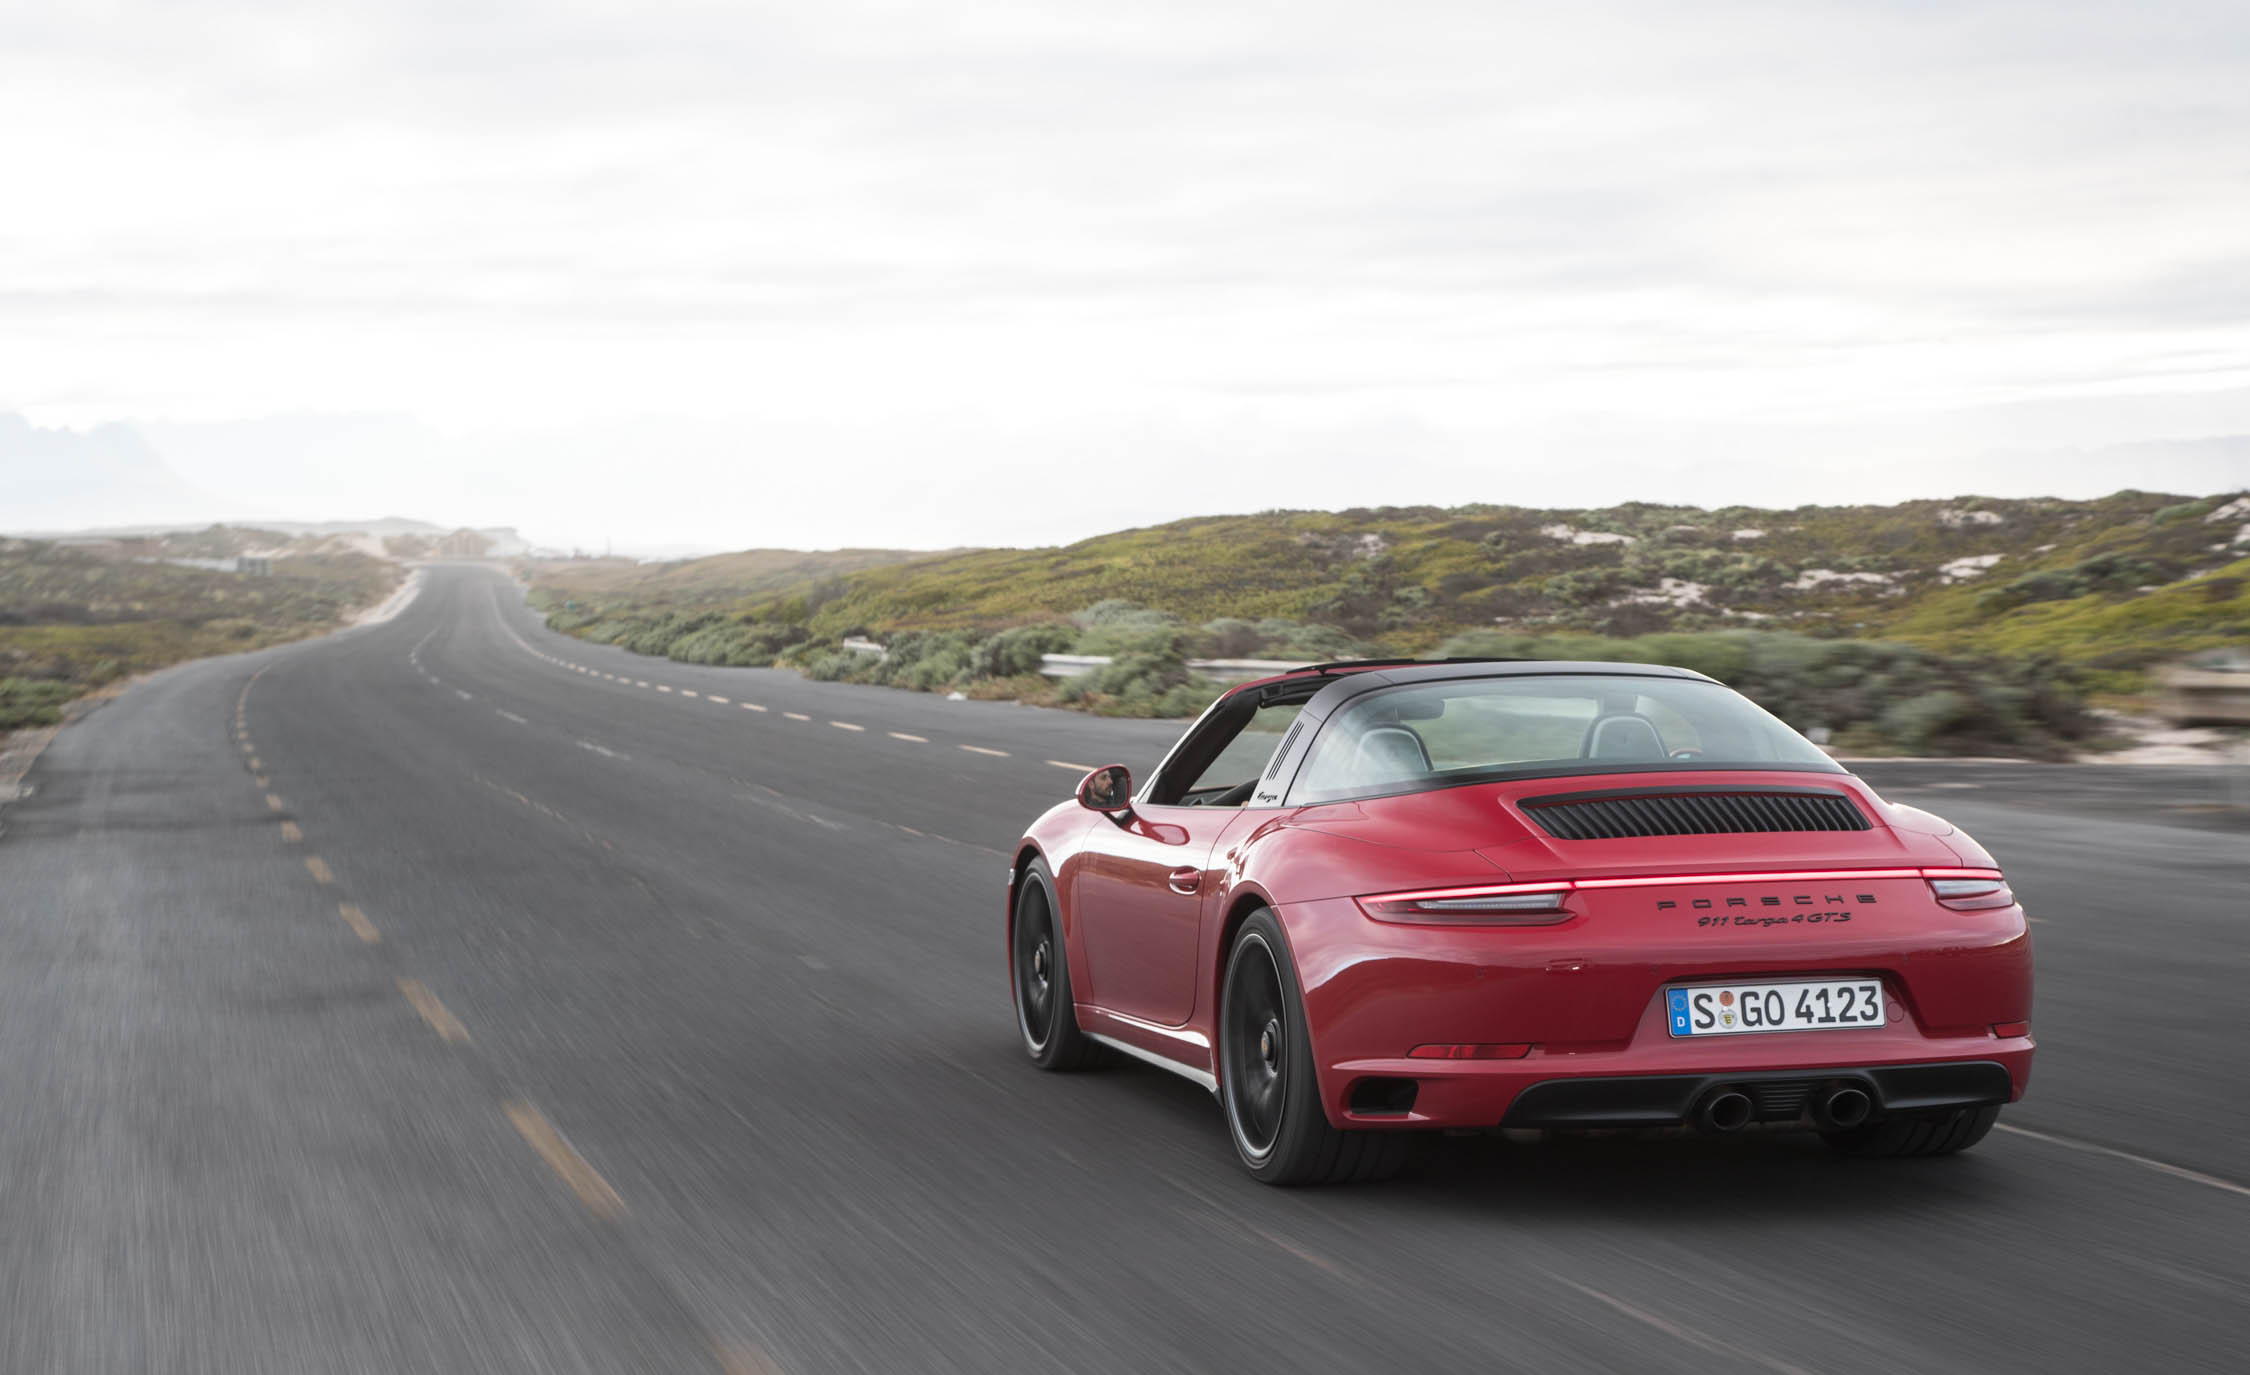 2017 Porsche 911 Targa 4 GTS Red Test Drive Rear And Side View (Photo 87 of 97)